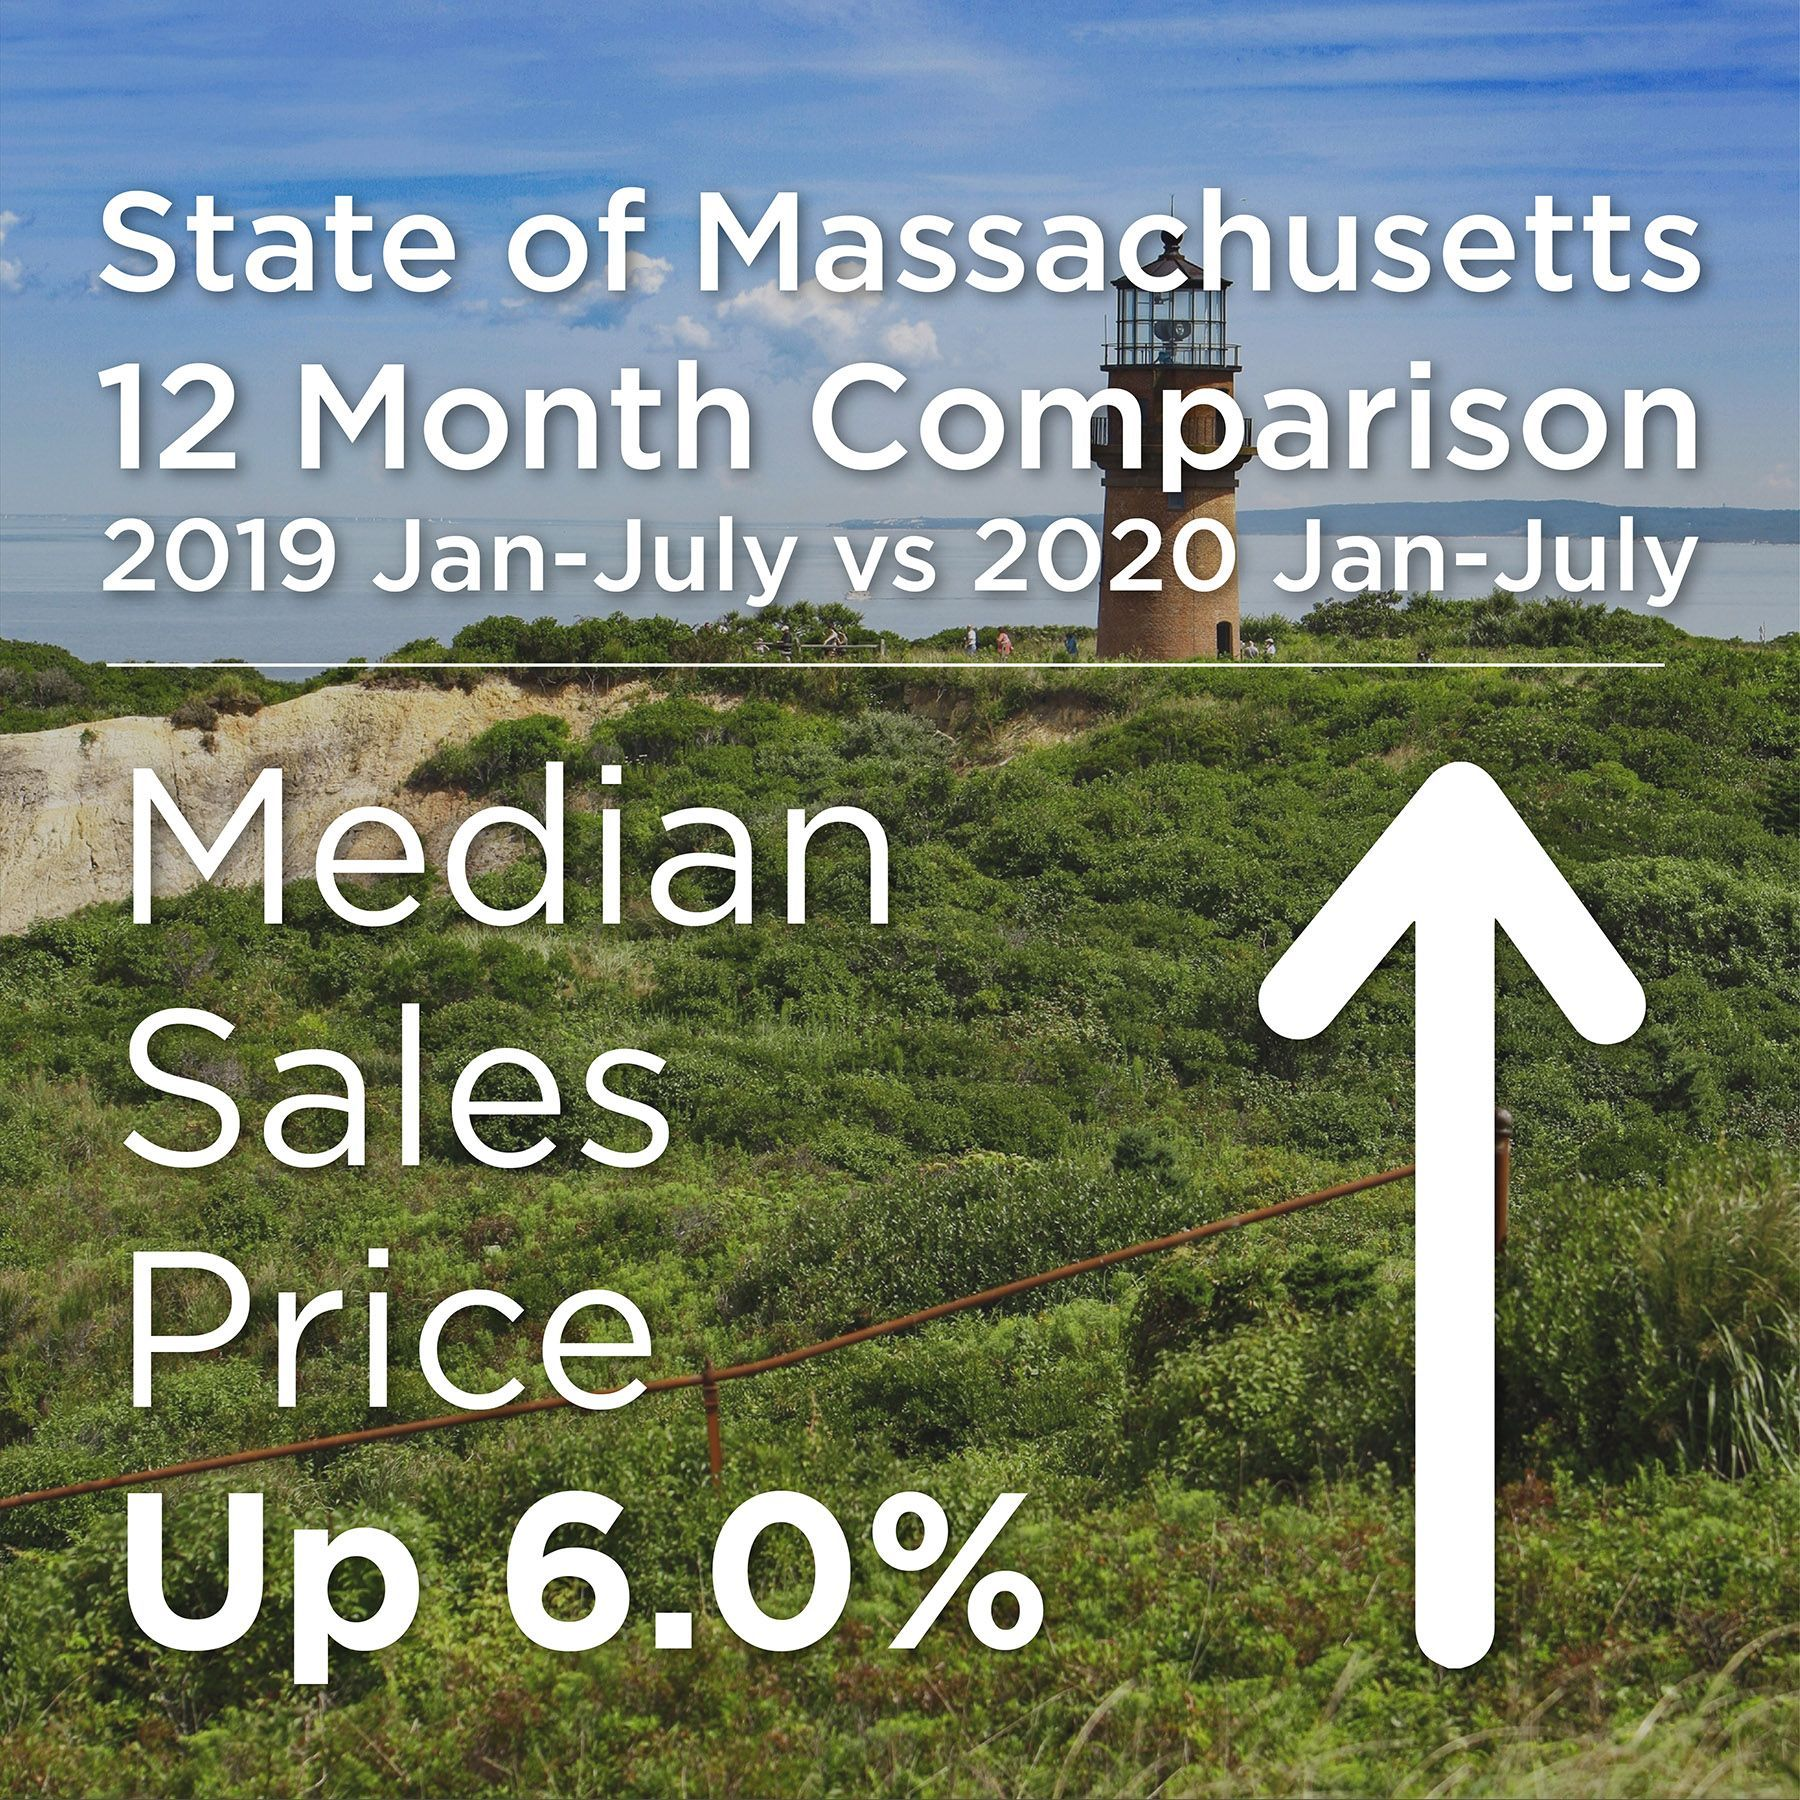 Market Update 📈 ⬆️ ⭐️ Year-to-date, our median sales prices in Mass are UP!  #Stats #marketupdate #thelucciteam # insta #realestate #realtorlife #realtor #WilliamRaveis #RaveisTogether